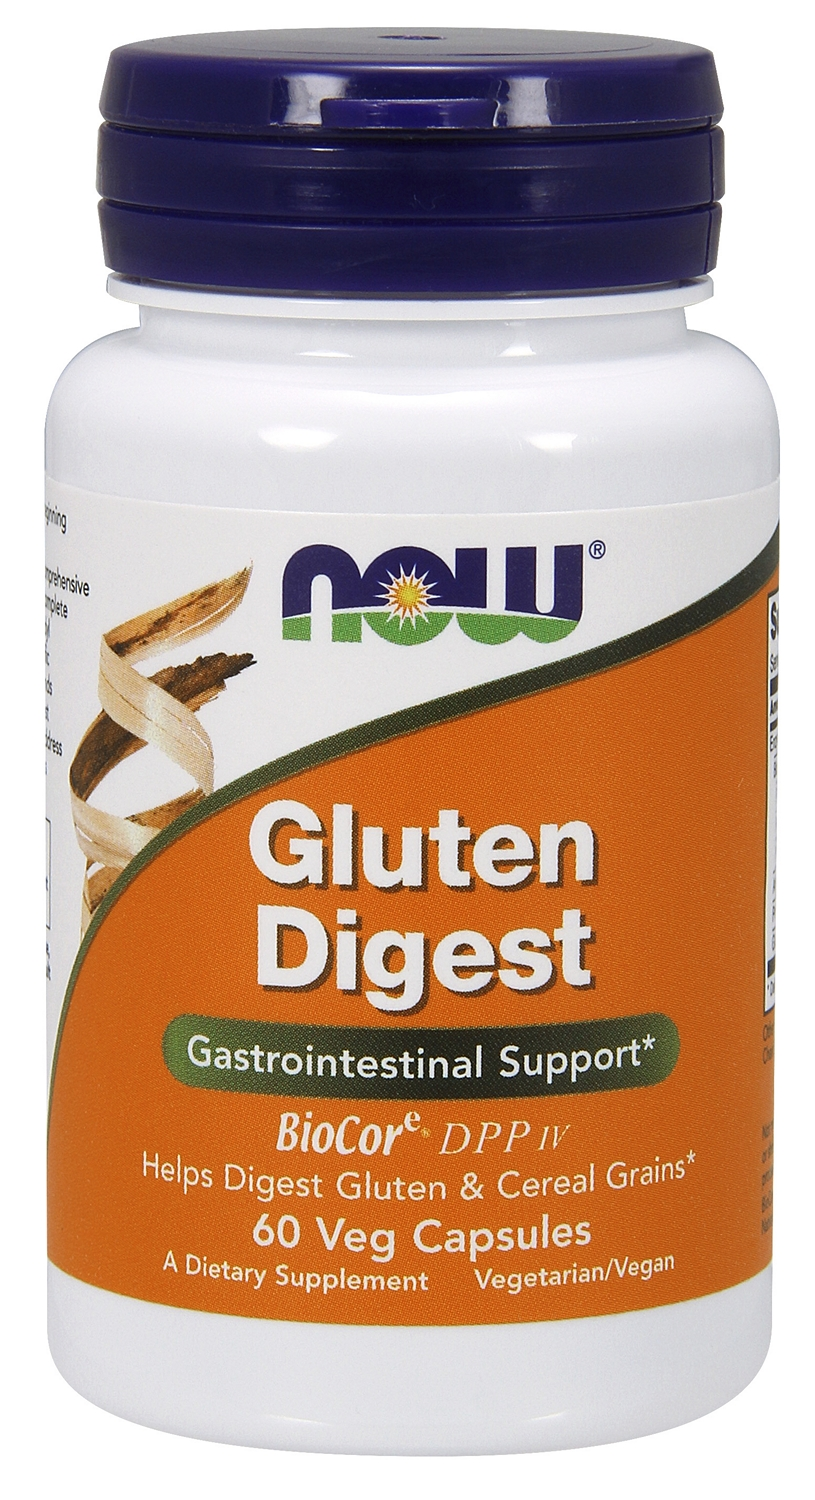 Gluten Digest 60 Vcaps by NOW